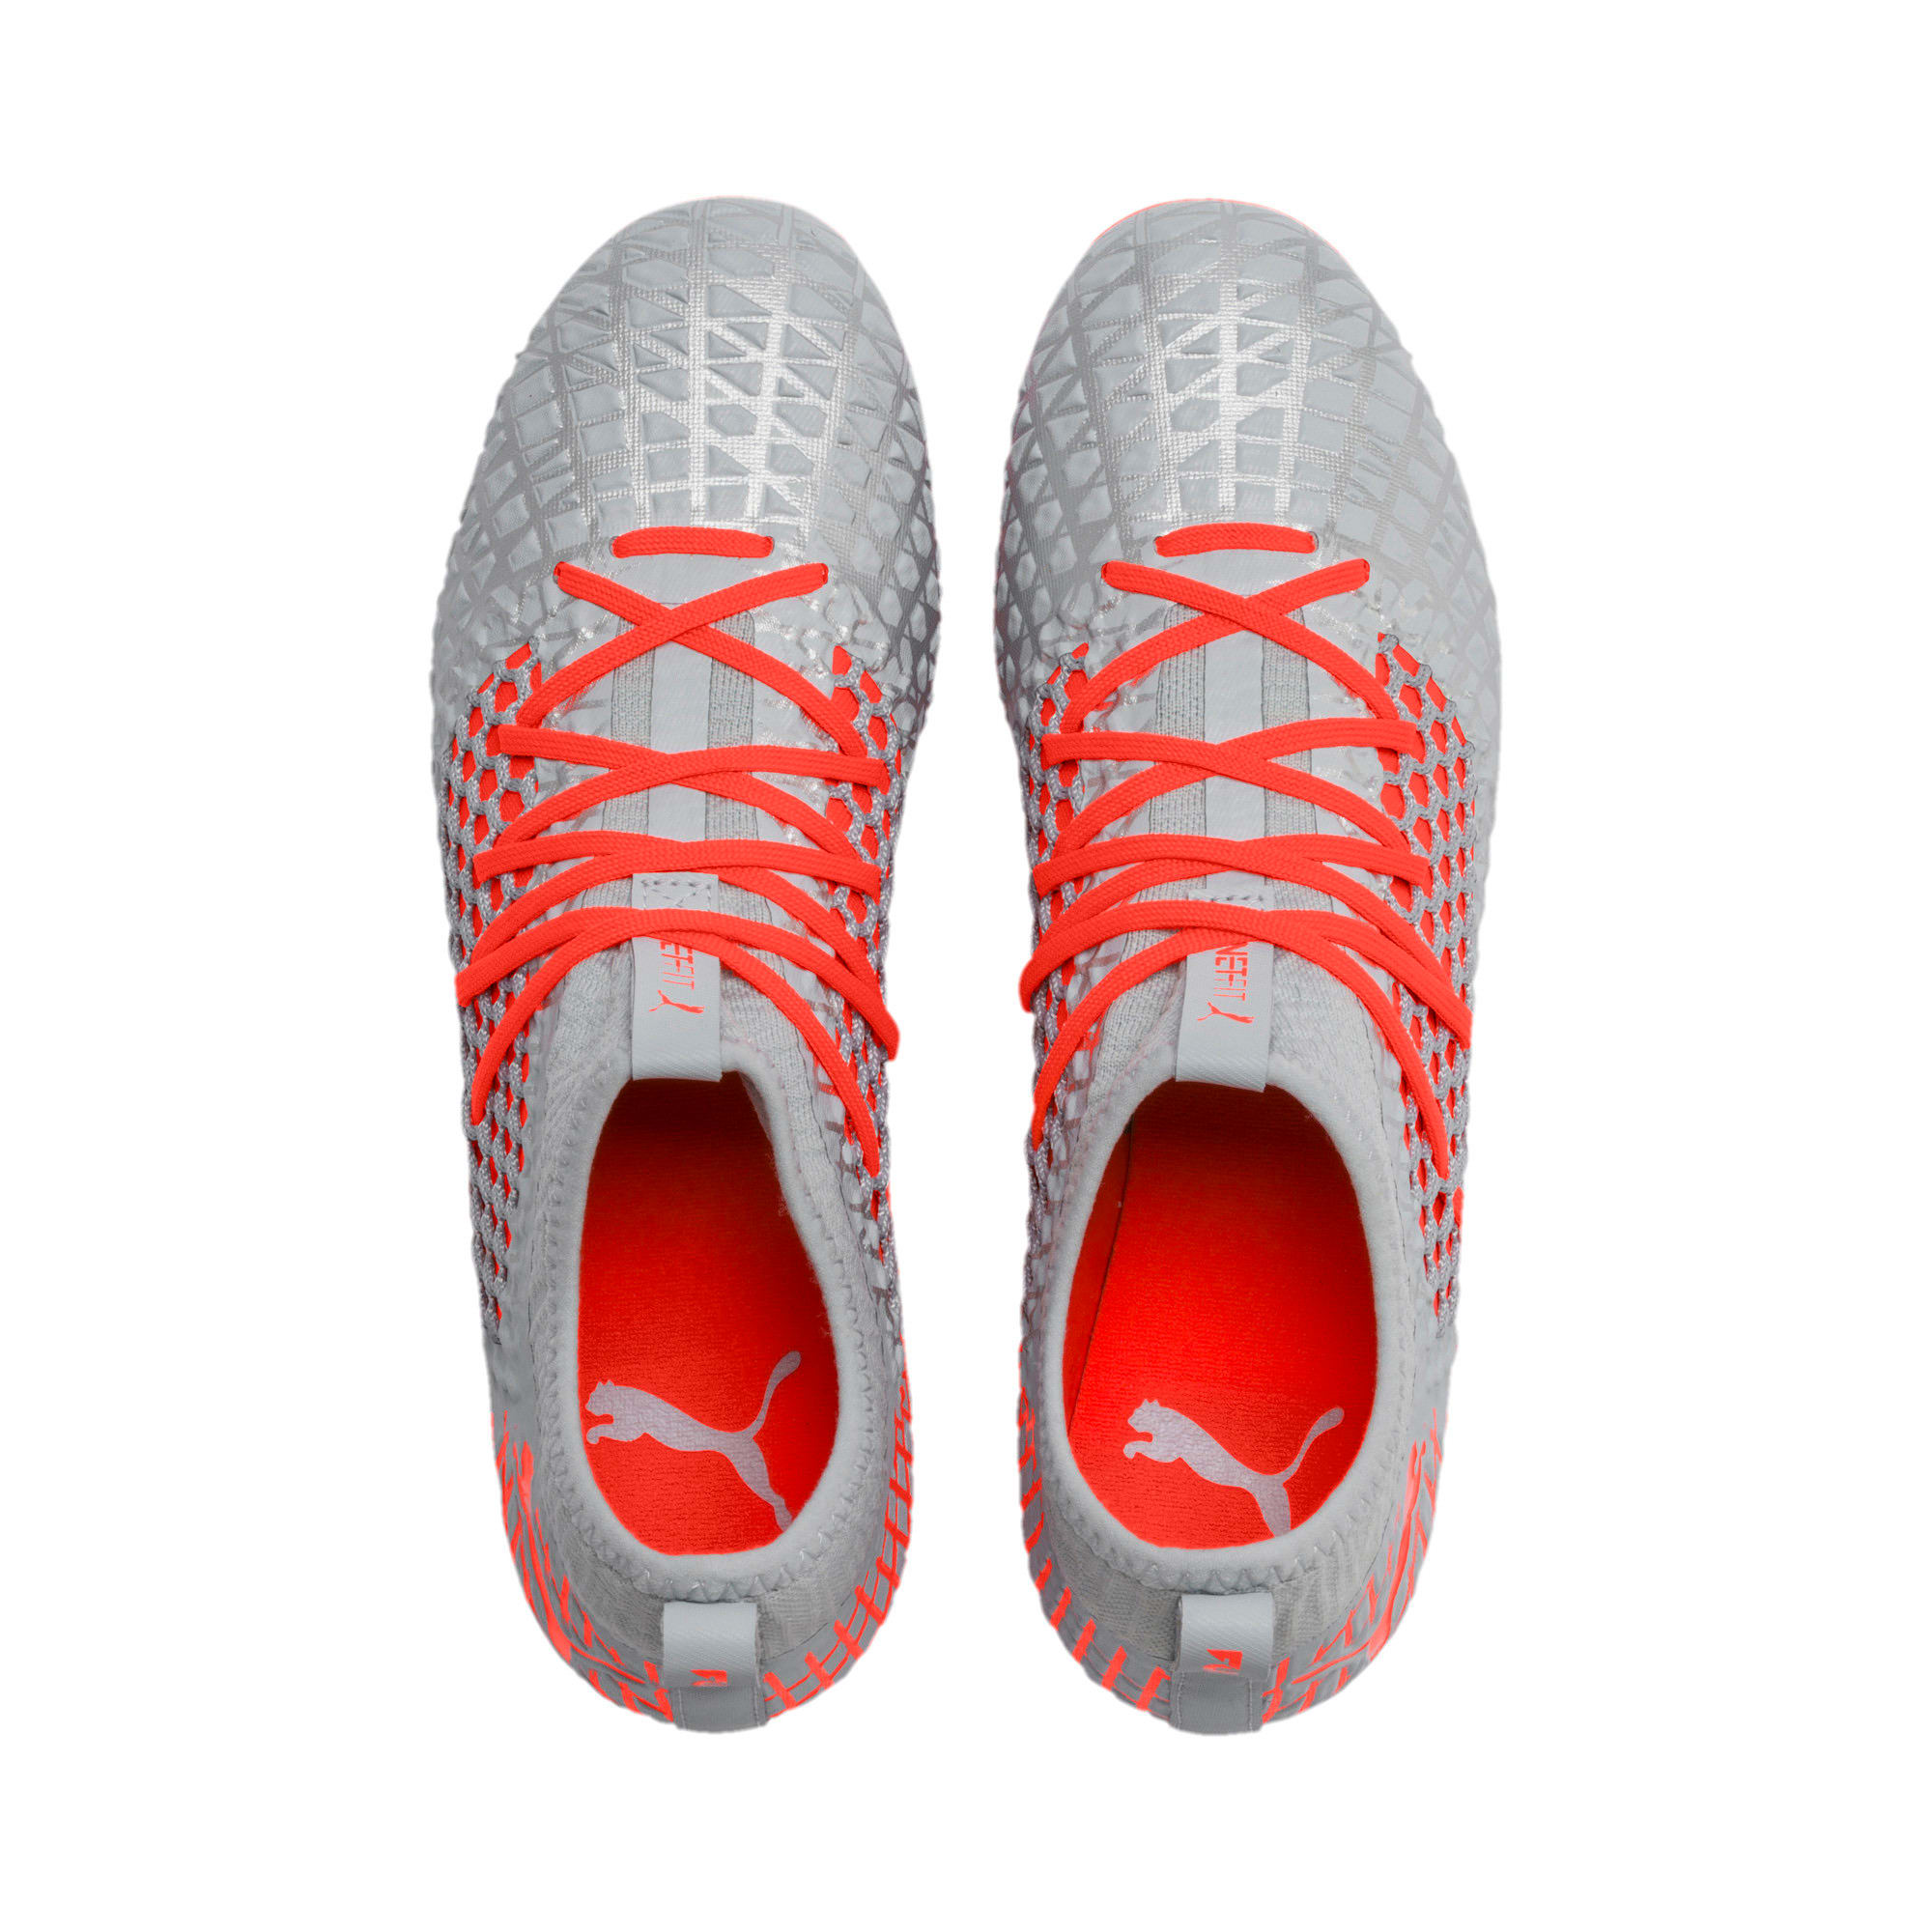 Thumbnail 7 of FUTURE 4.3 NETFIT FG/AG Men's Soccer Cleats, Glacial Blue-Nrgy Red, medium